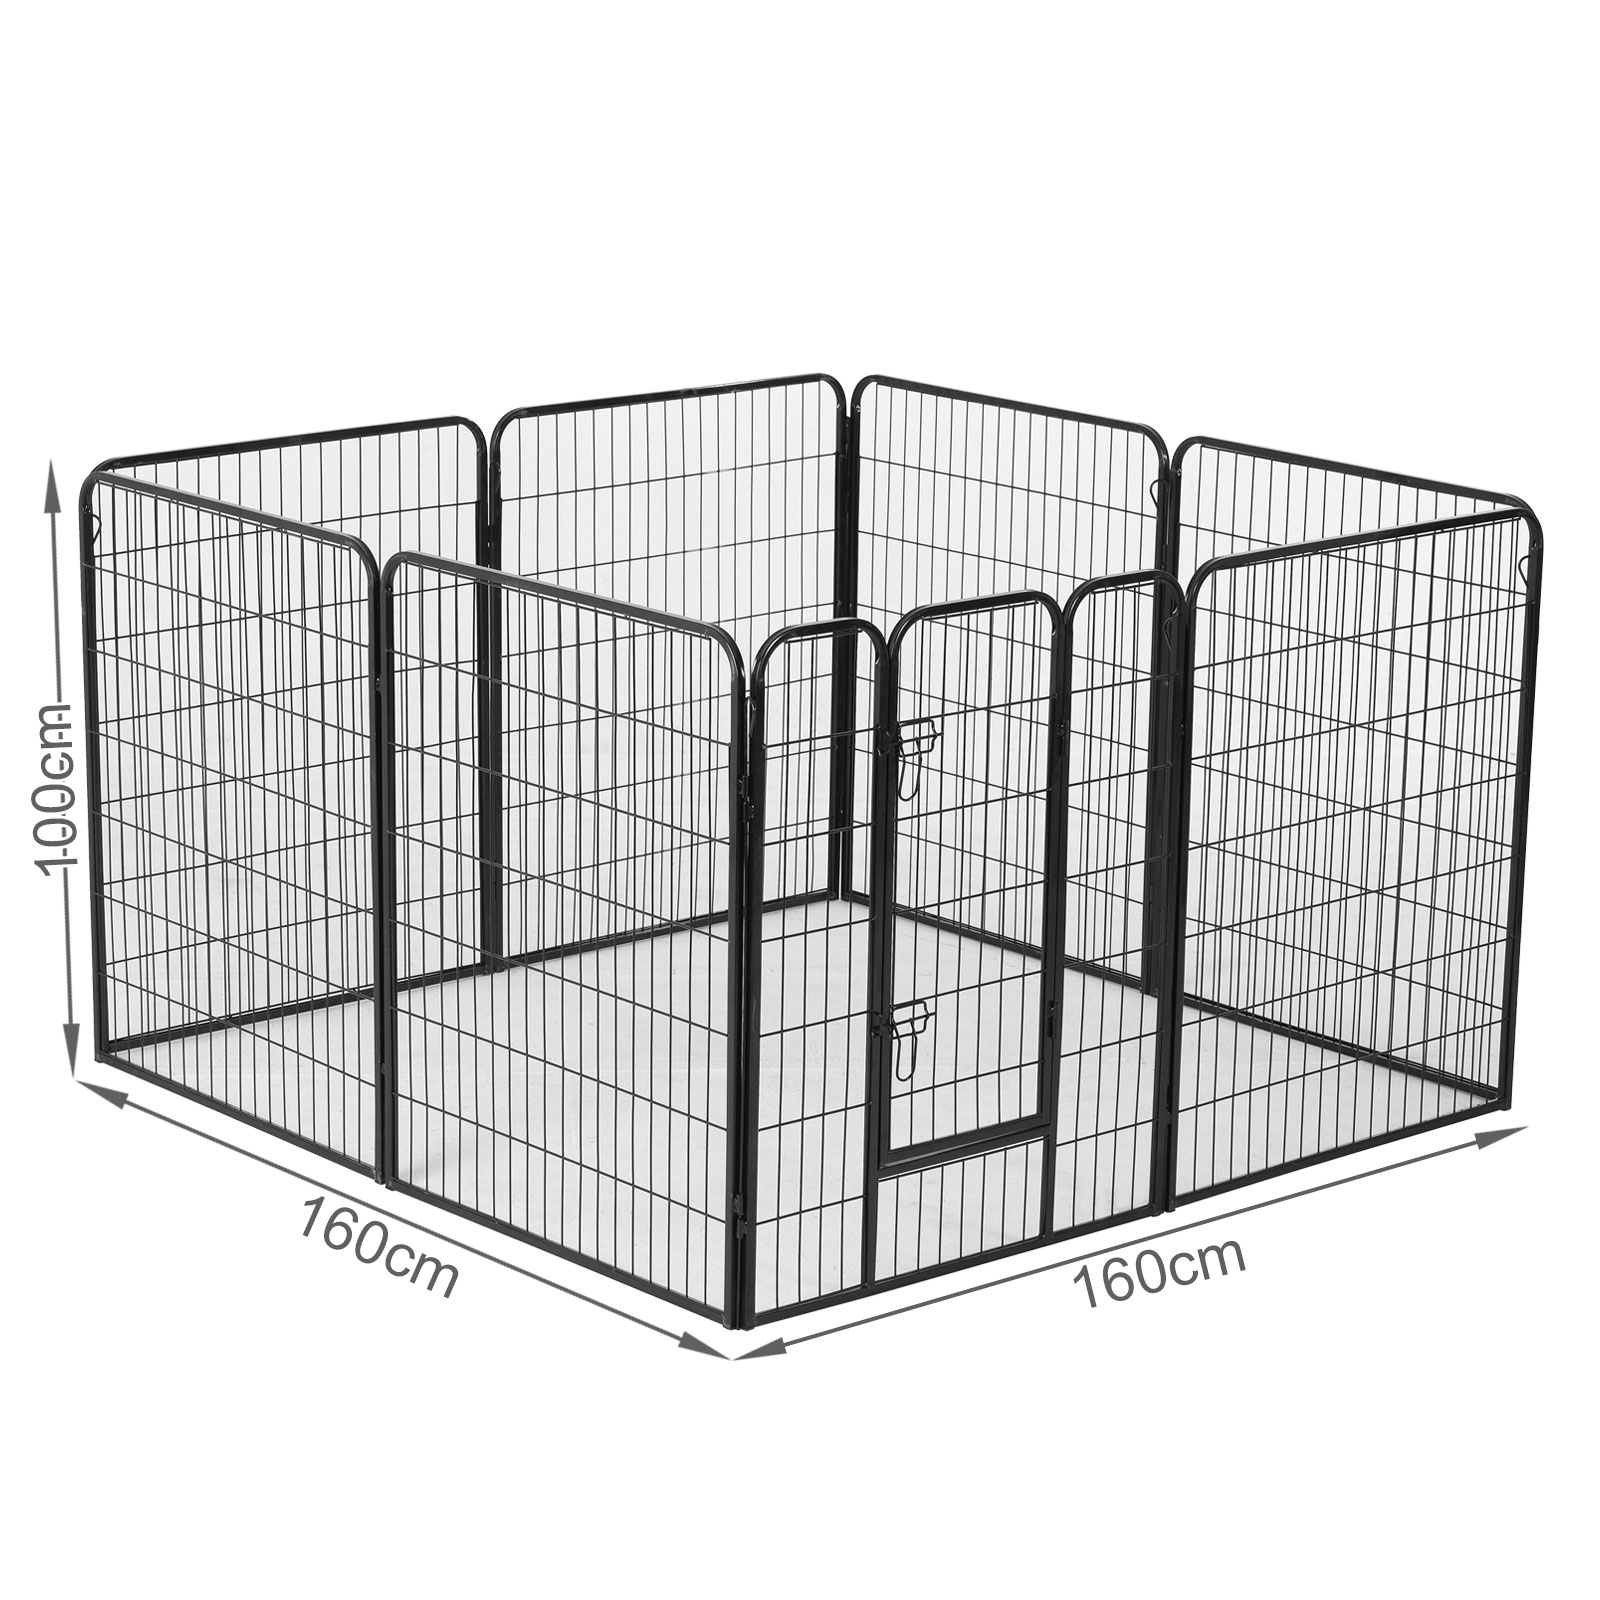 drop pin dog crate assembly instructions